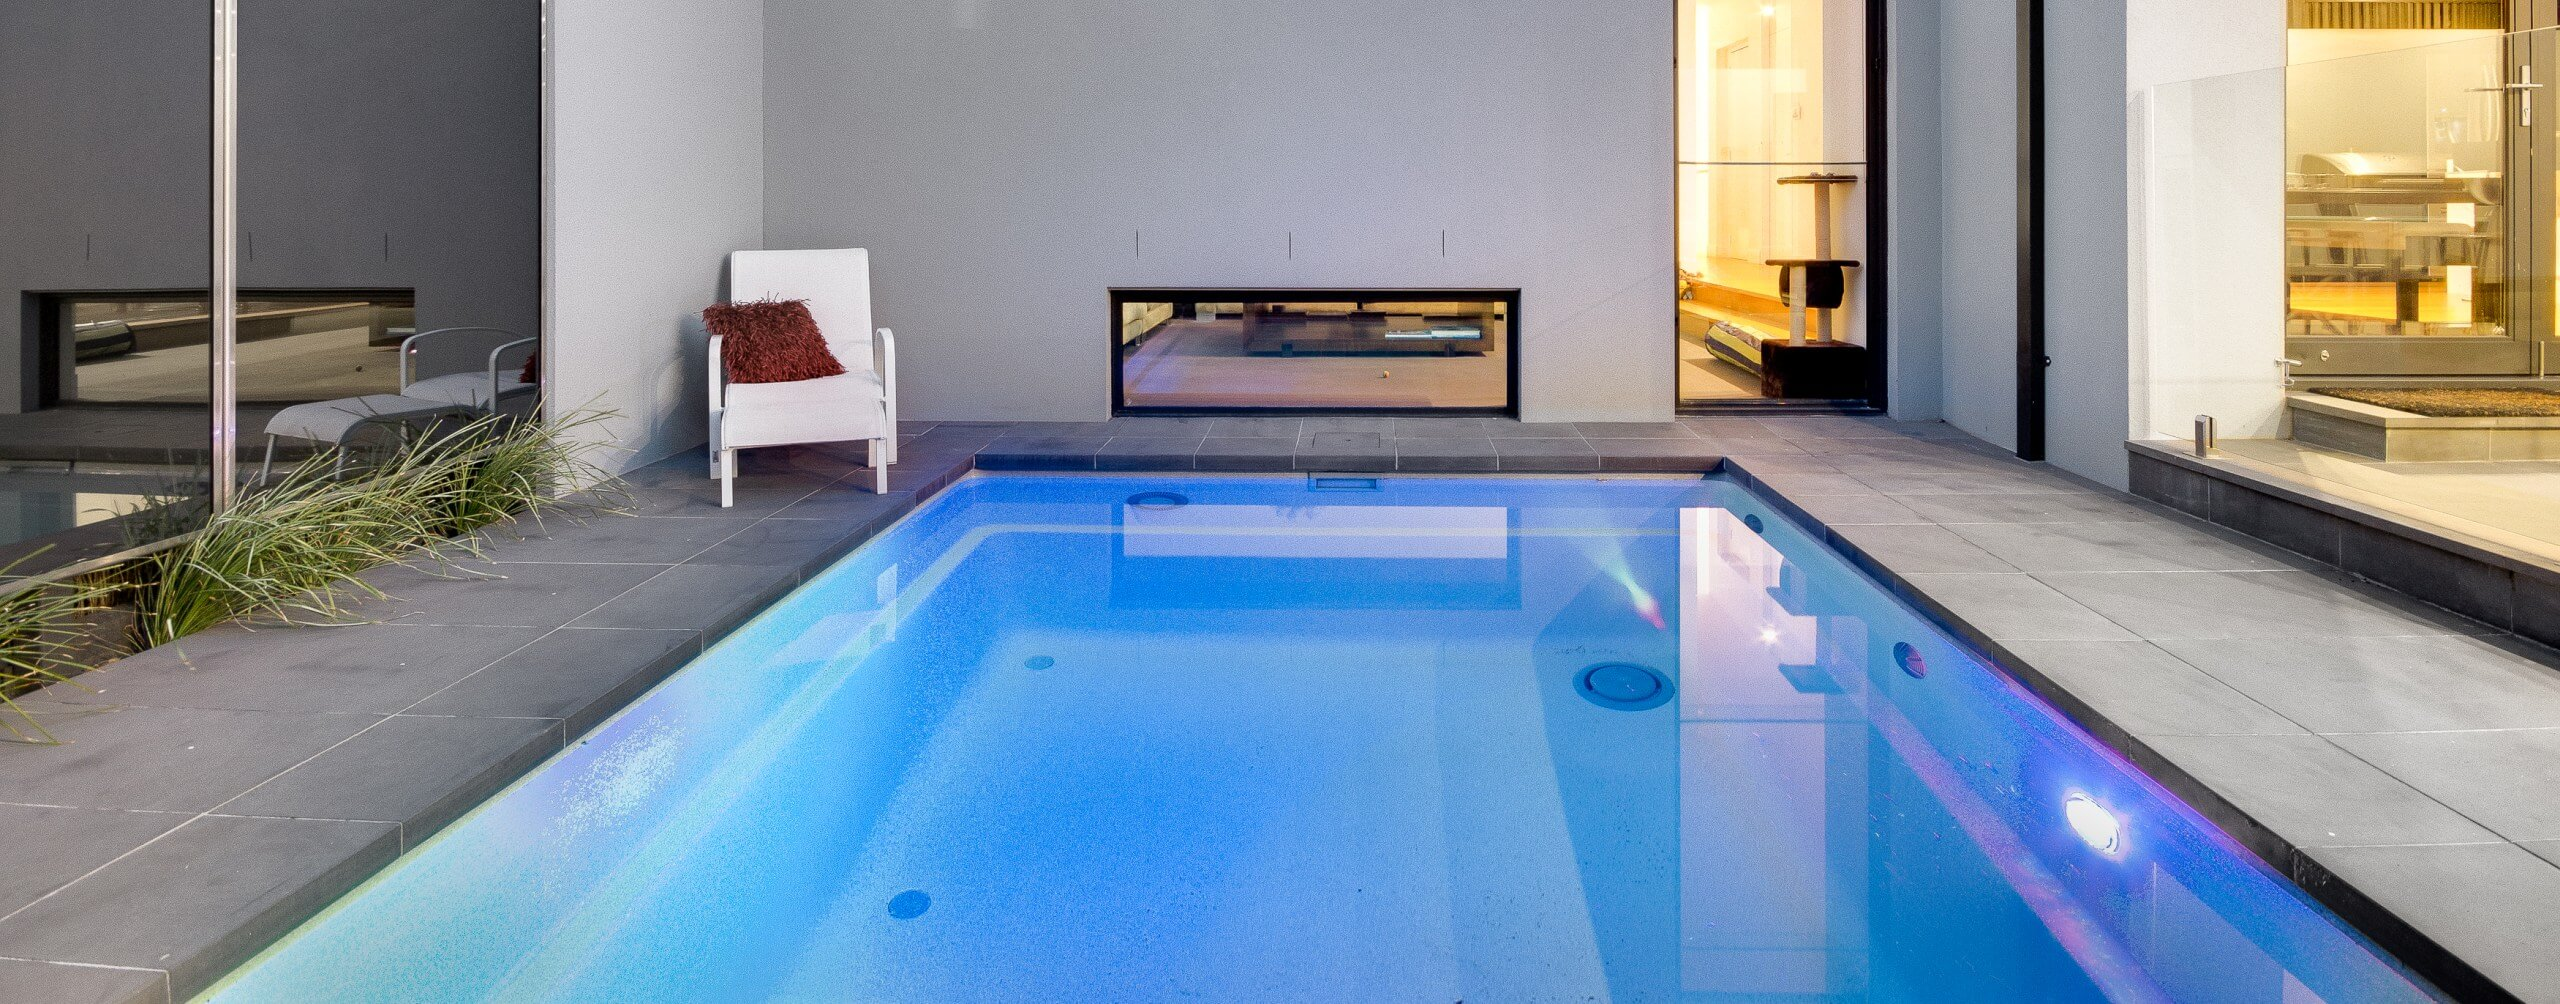 Compass Pools Australia Plunge pool Balwyn installation